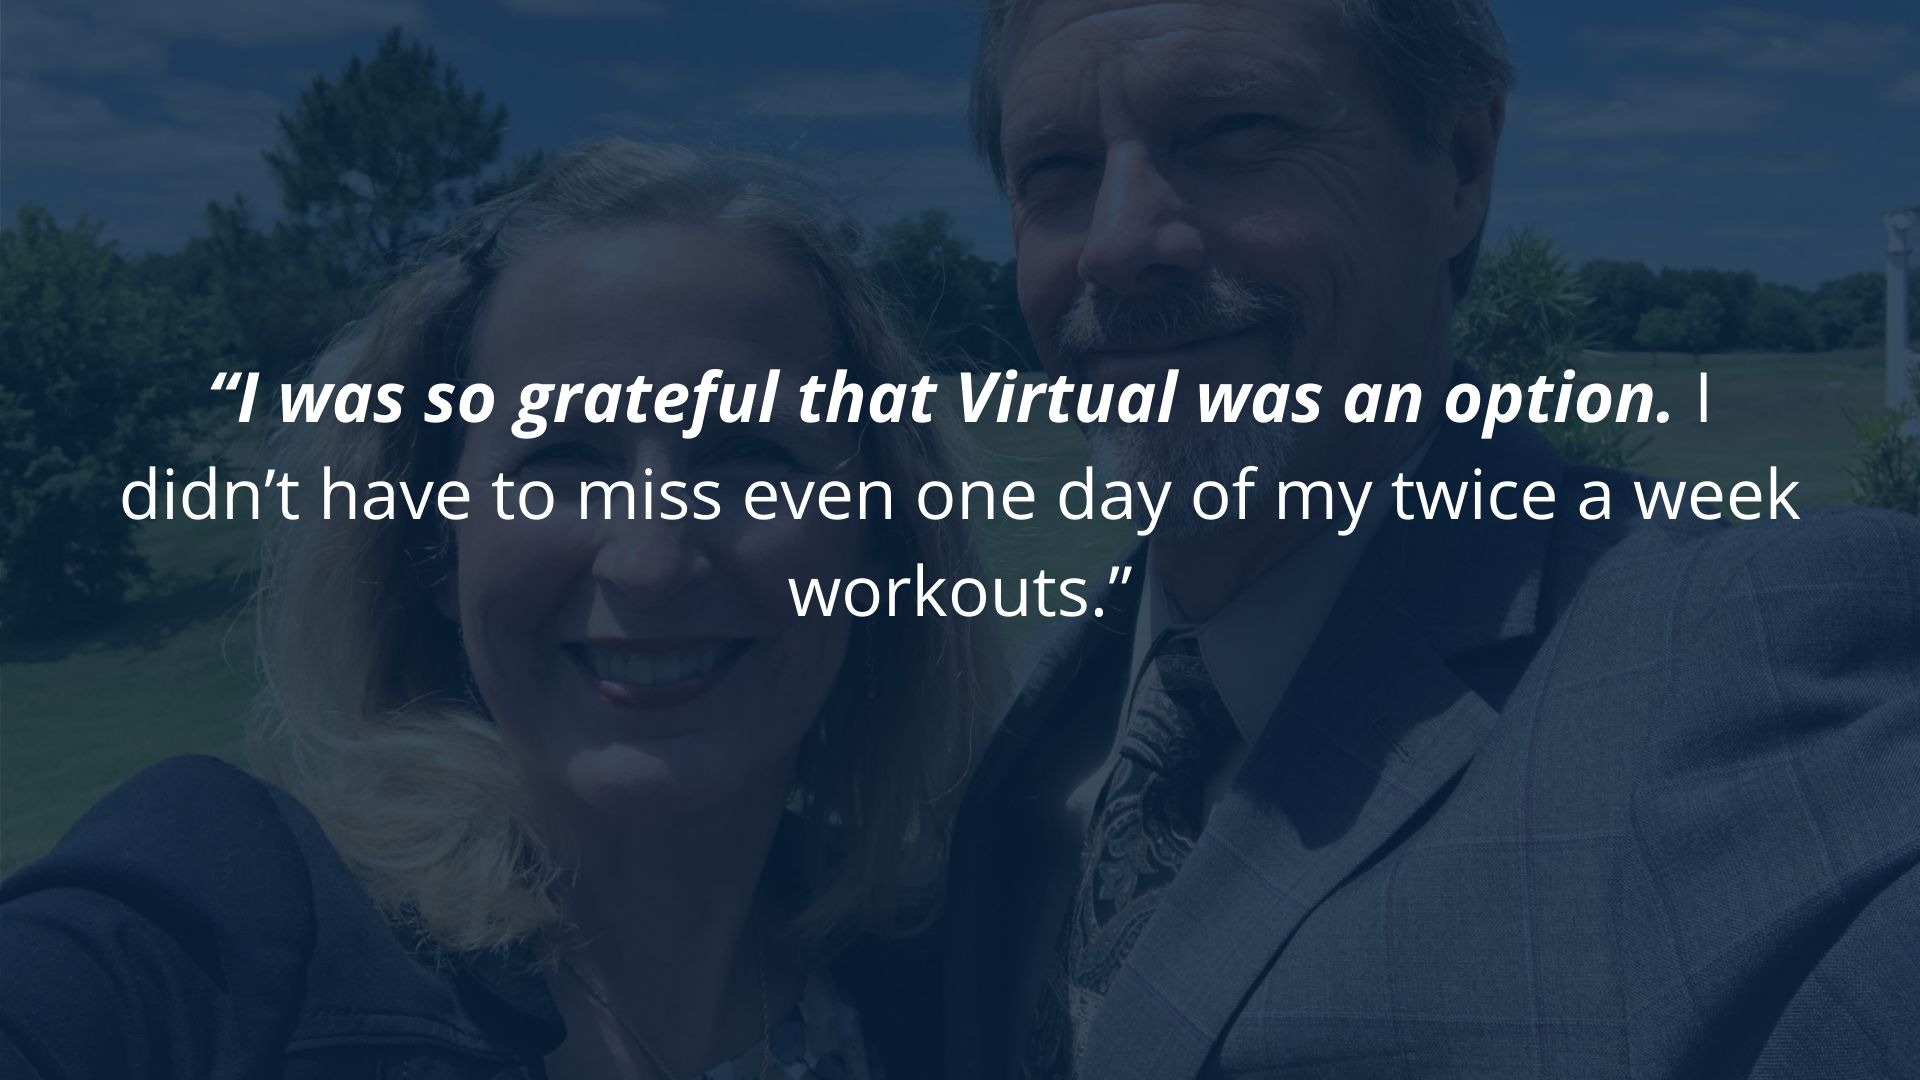 Client says she is so grateful Virtual training was an option